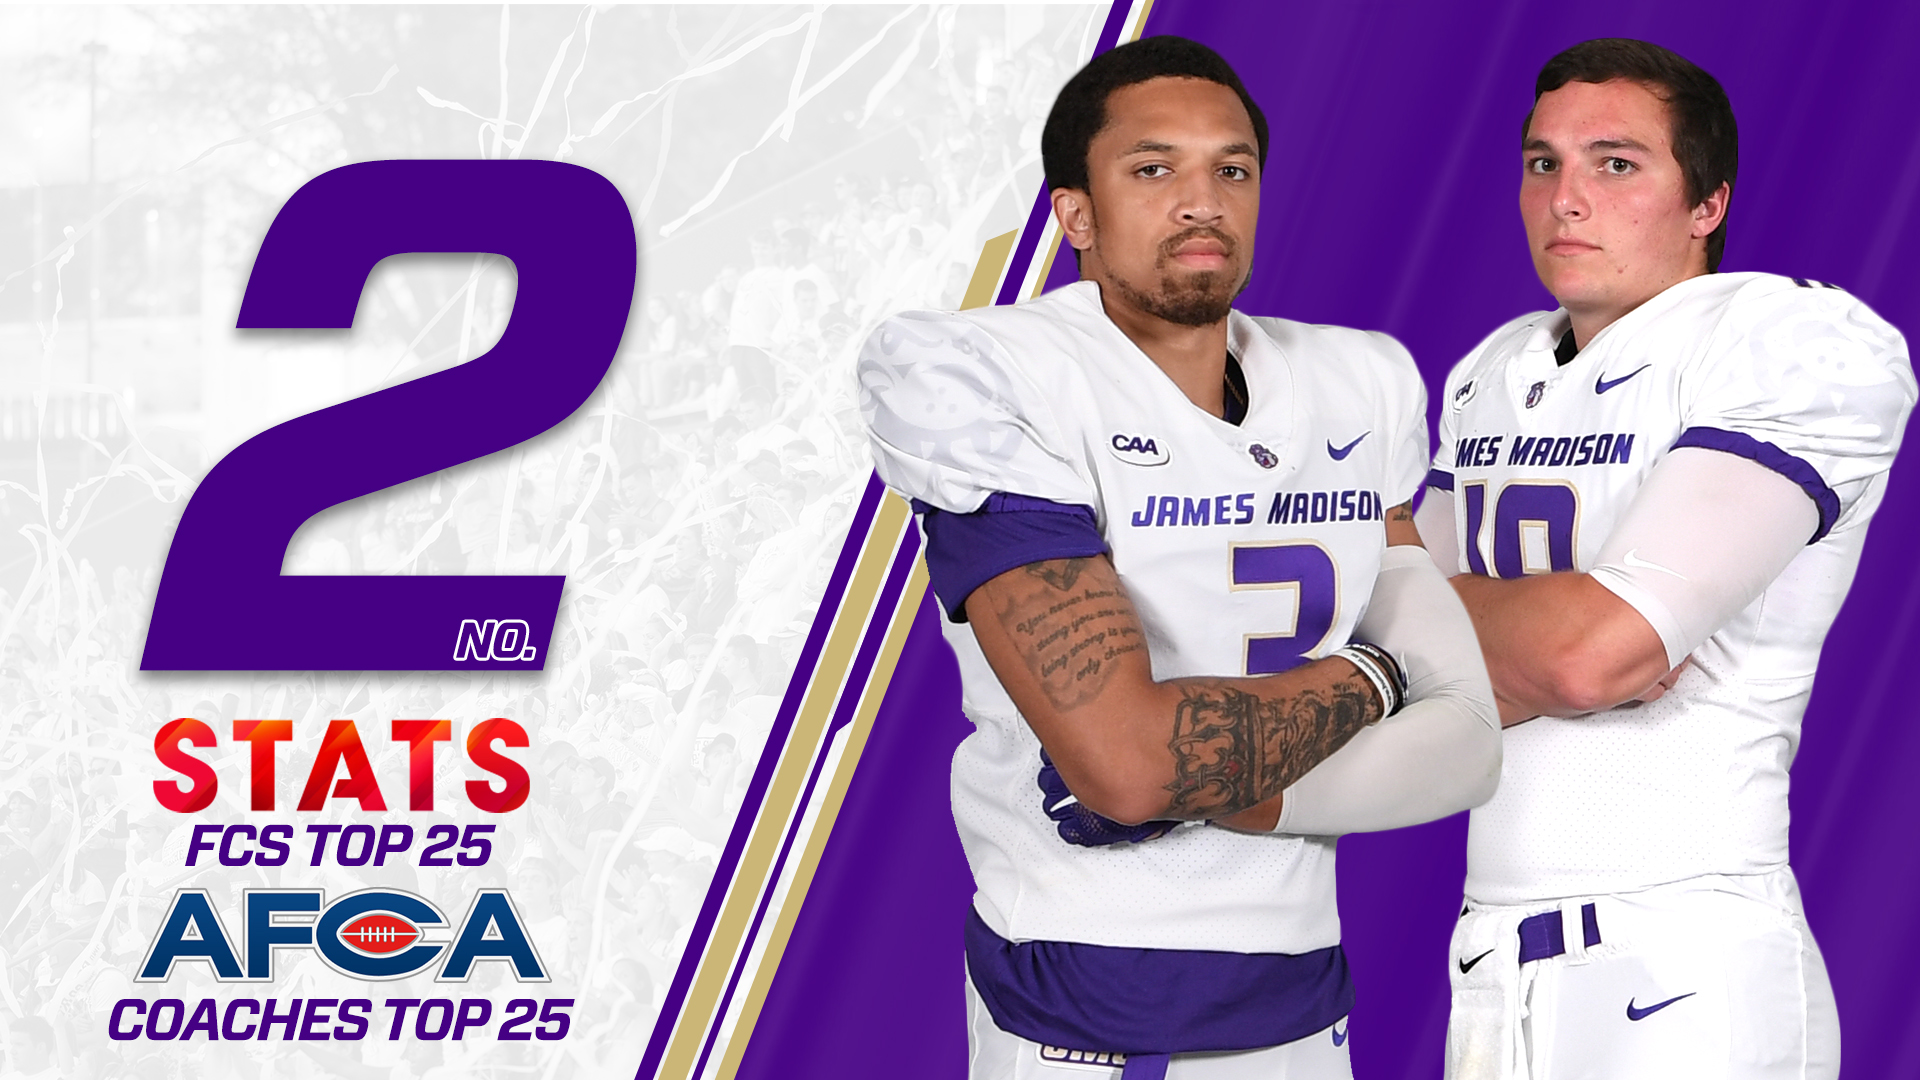 Football: Dukes Hold Strong at No. 2 Nationally Entering Conference Play